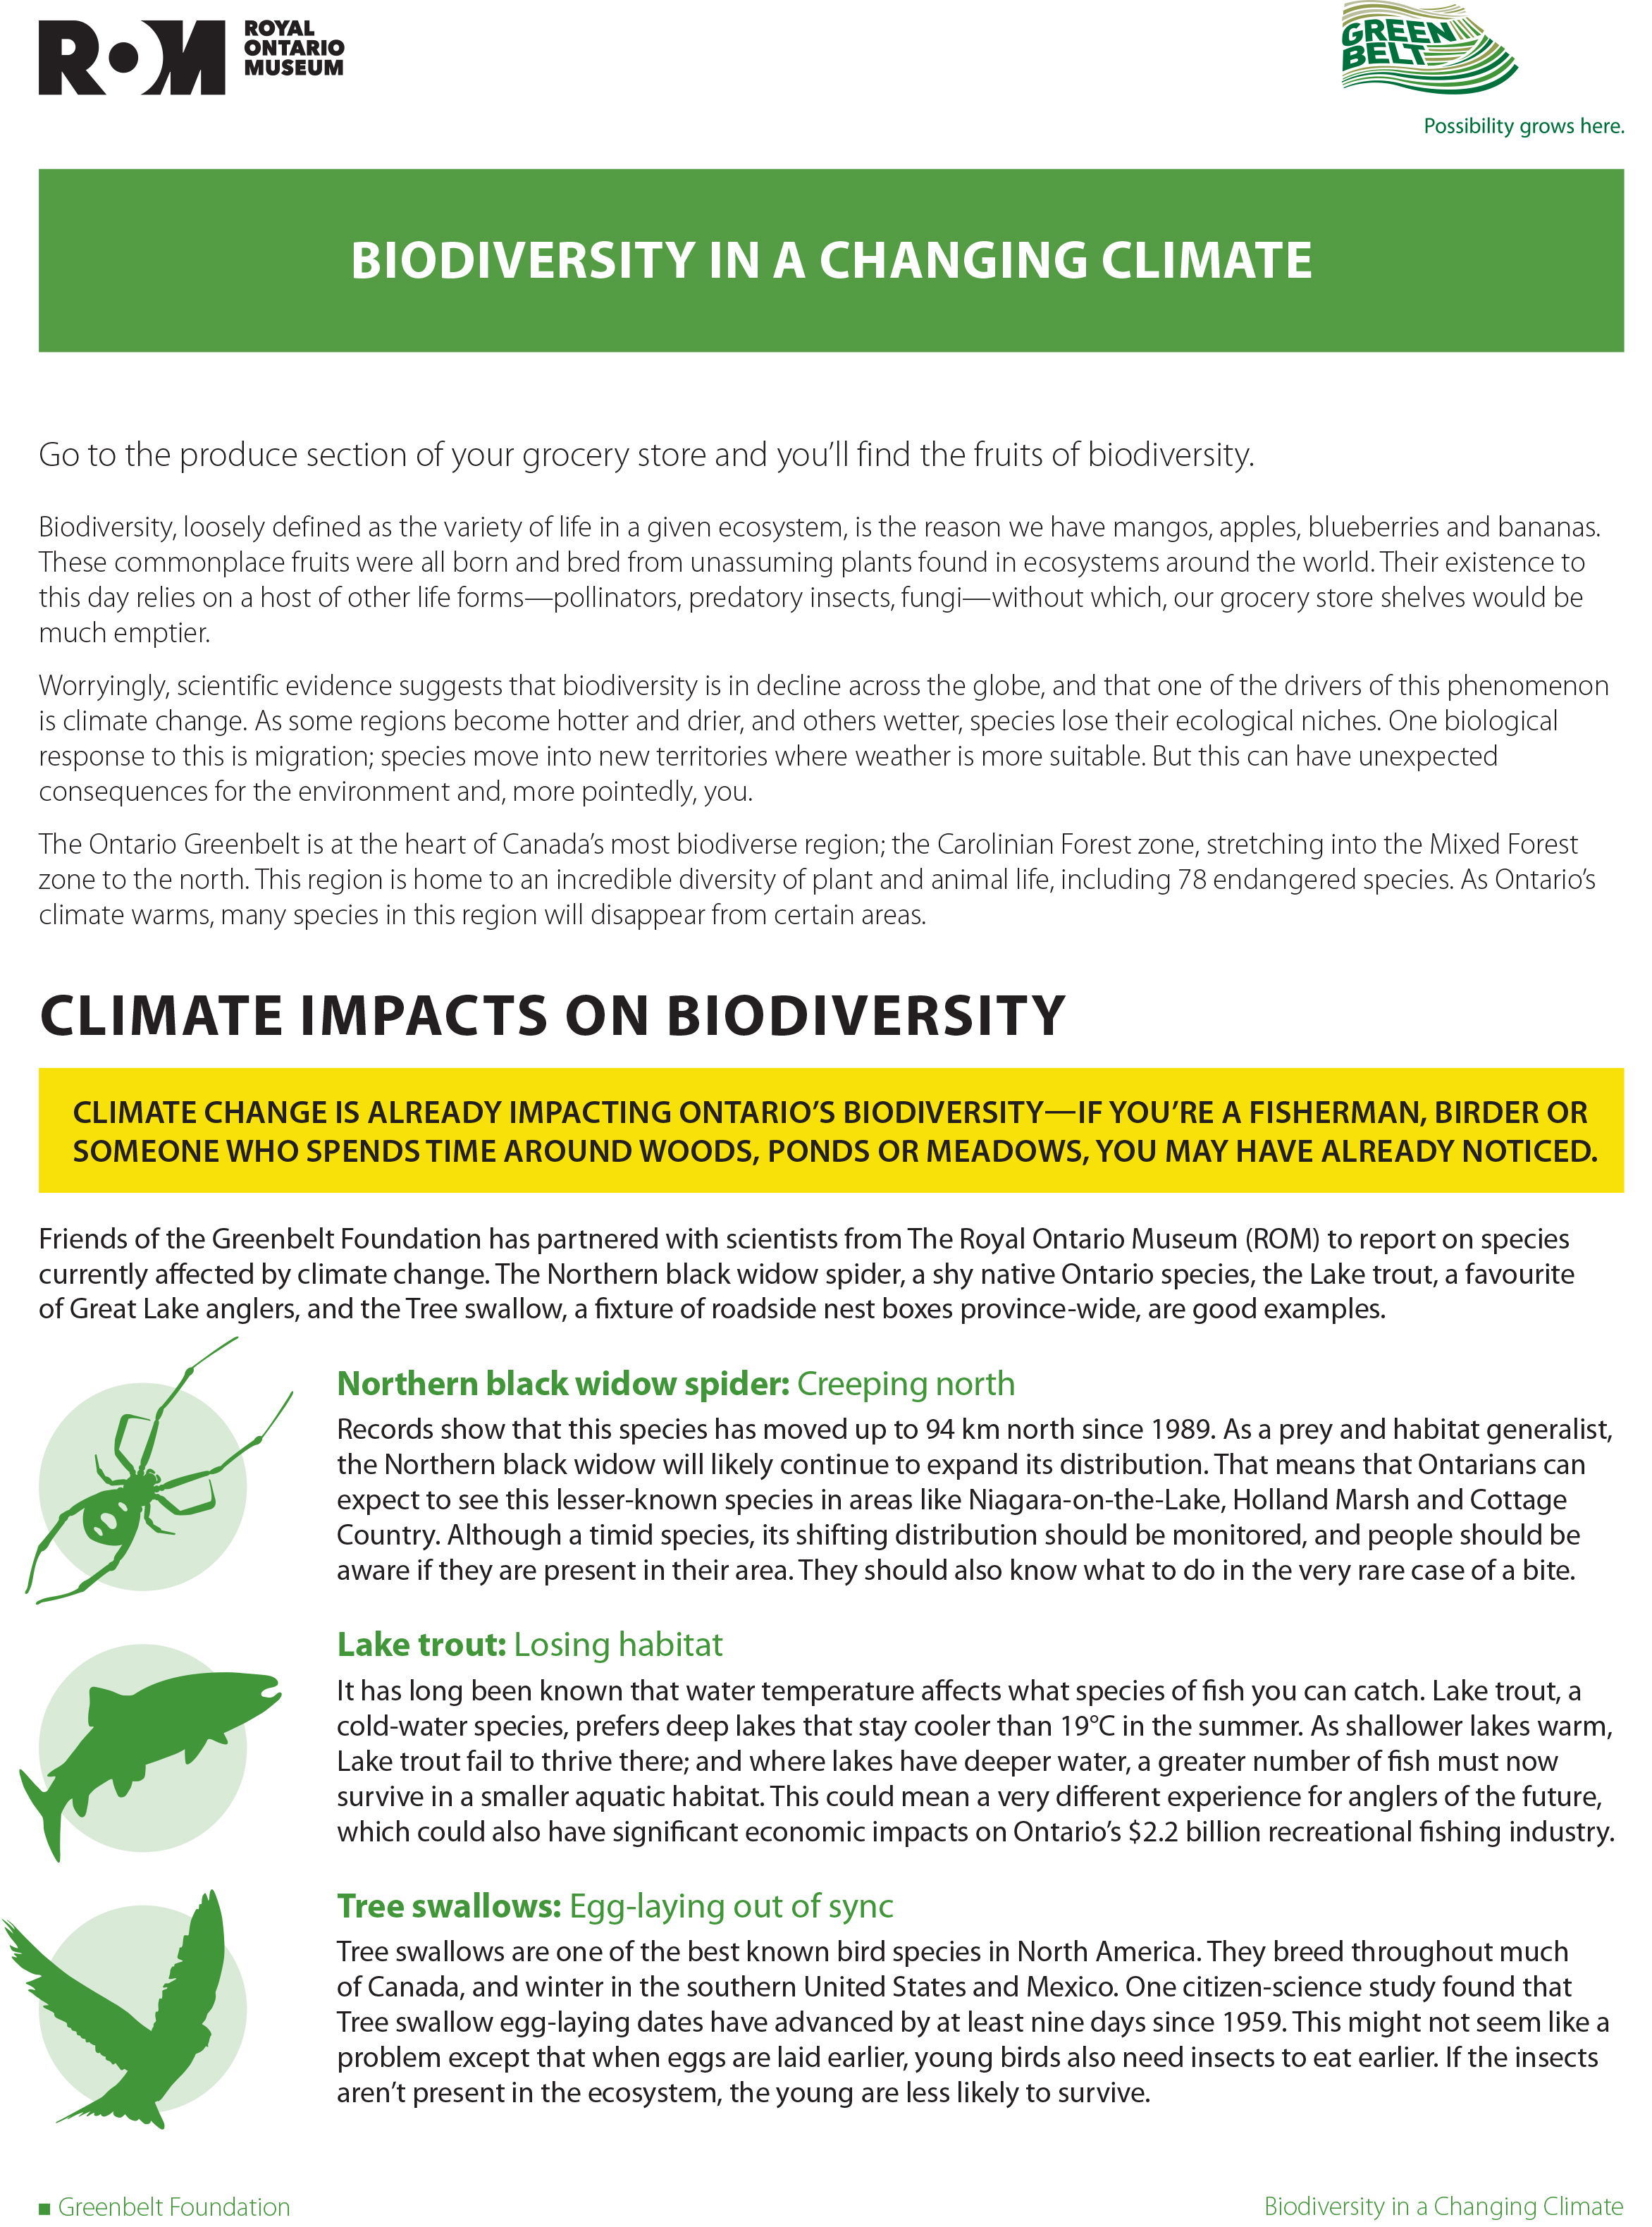 BiodiversityChangingClimate_2PAGER_E-ver-1.jpg